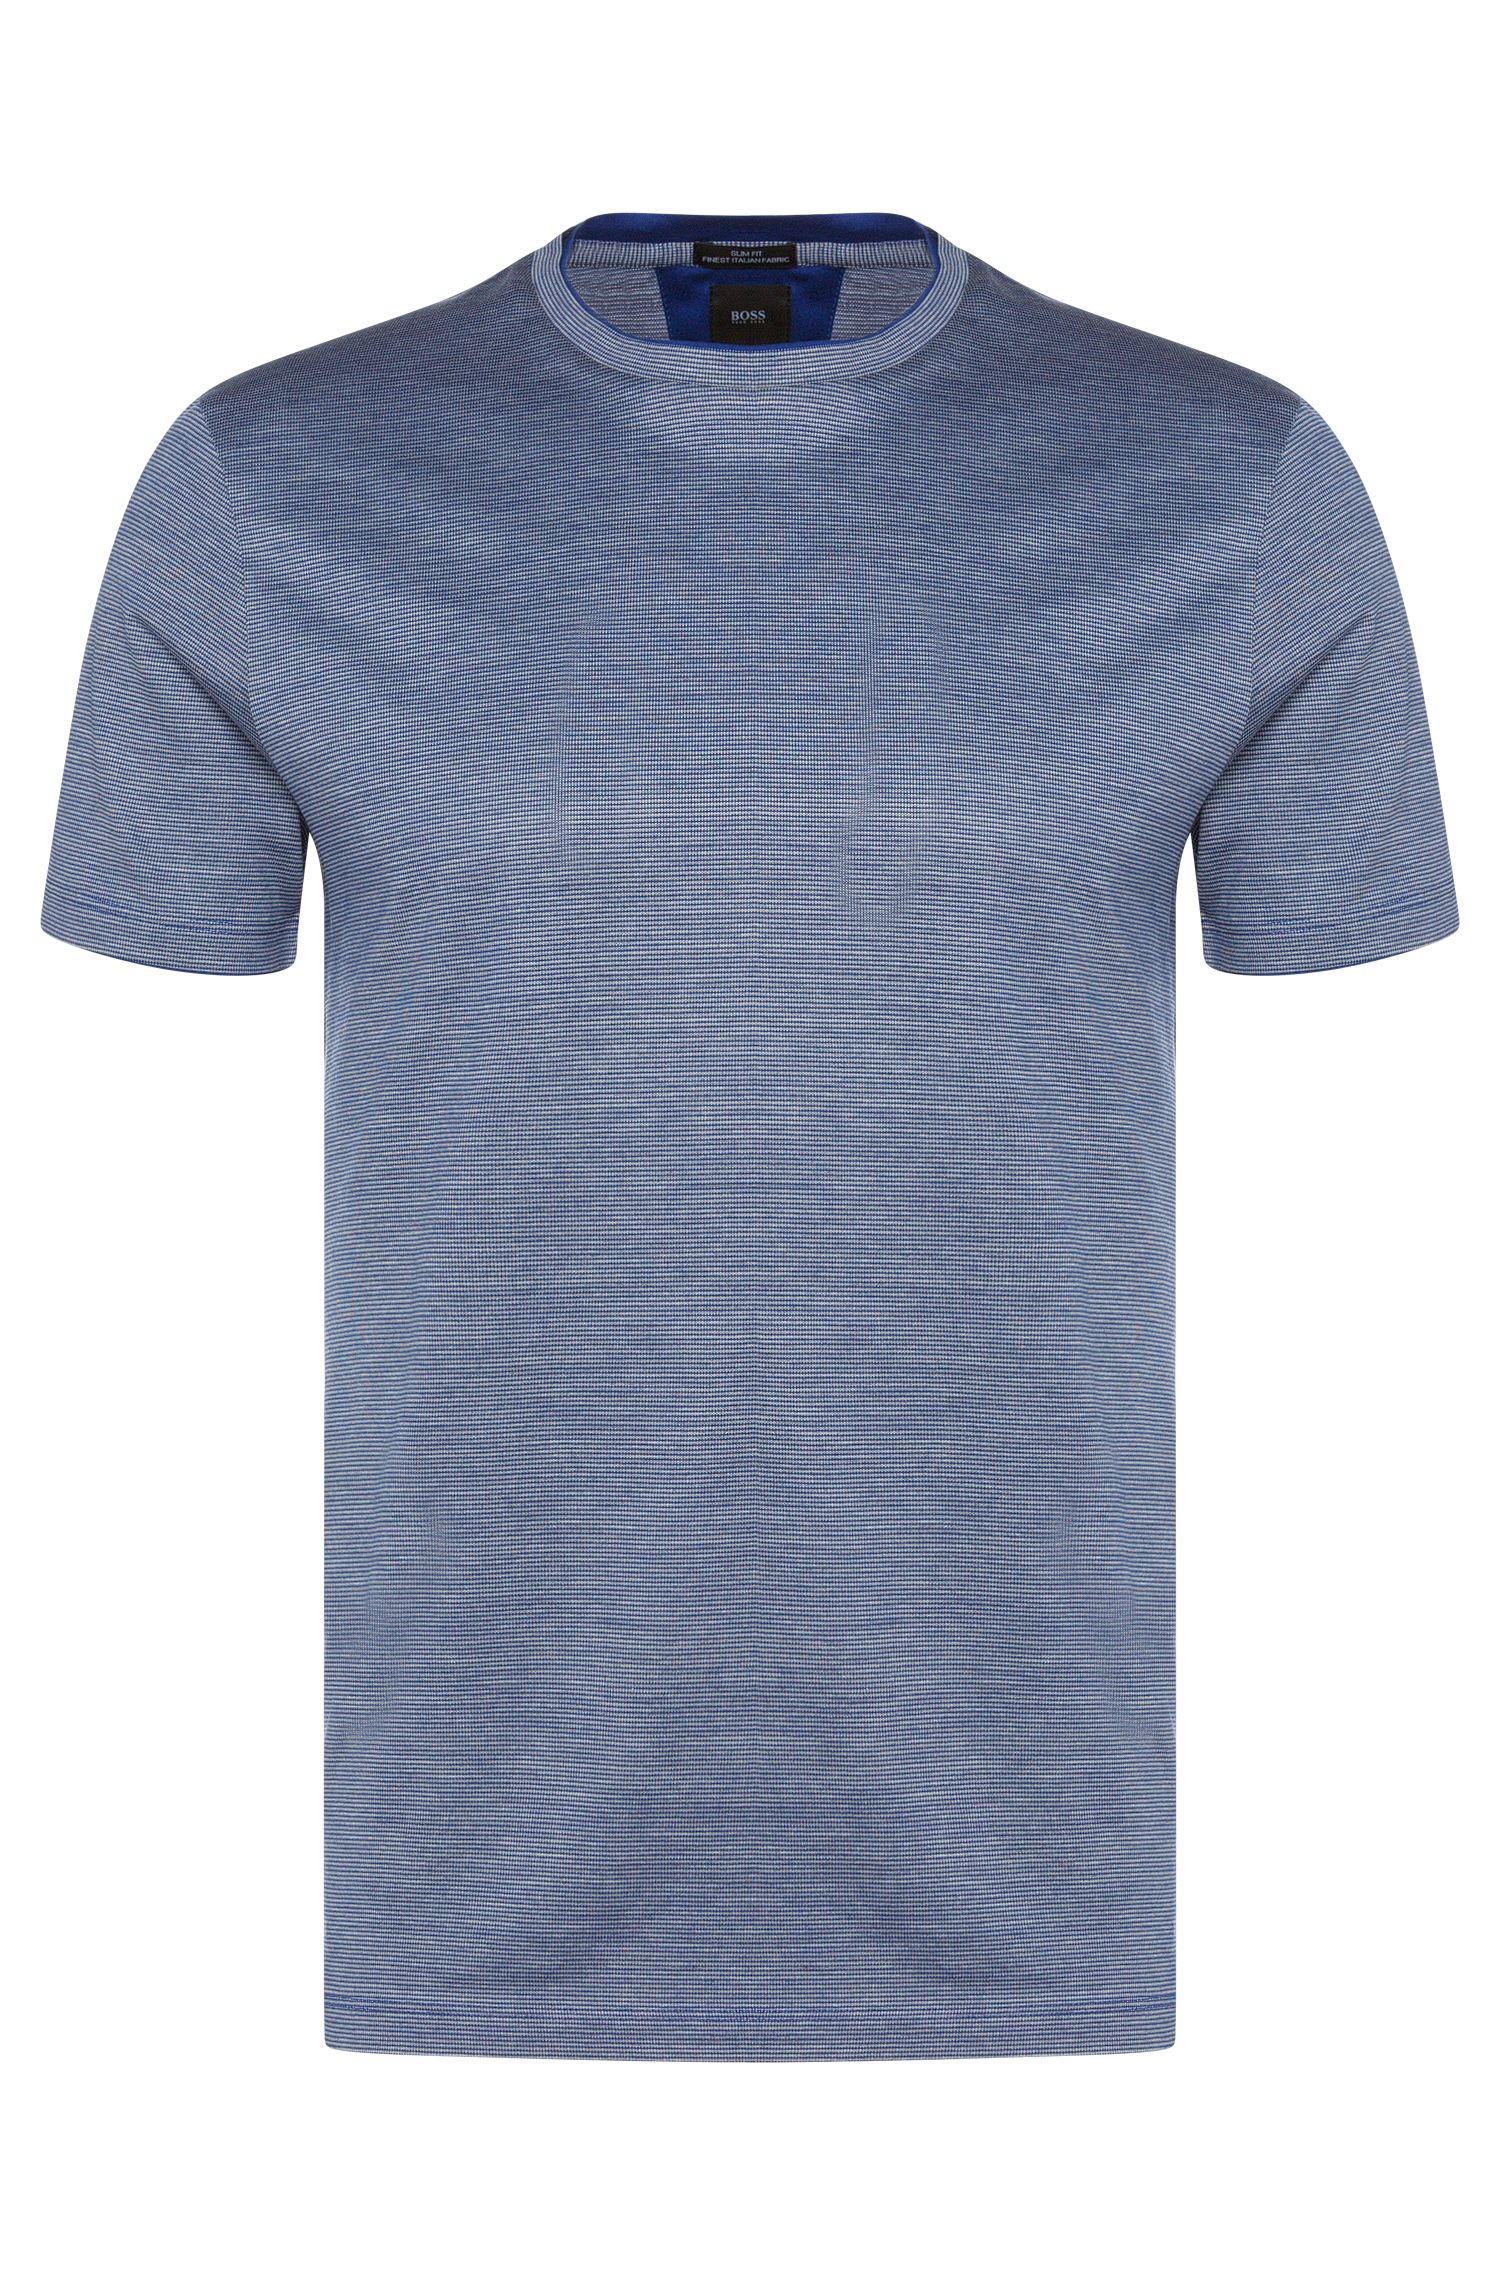 Gestreept slim-fit T-shirt van een zijdemix uit de Tailored-collectie: 'T-Tribel 18'